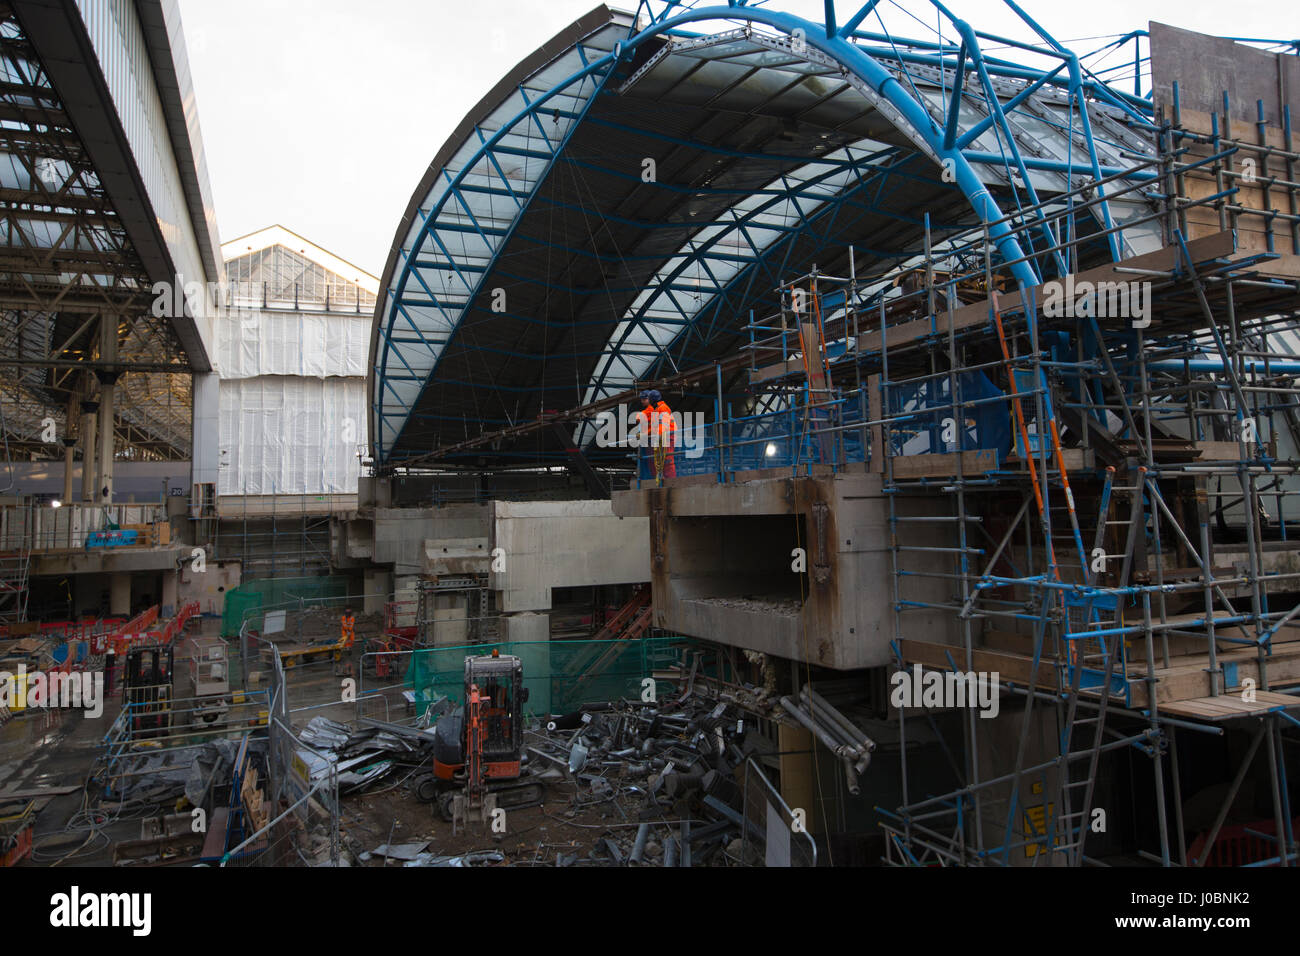 Former Eurostar terminal at London Waterloo station gets an £800m redevelopment at Britain's busiest station - Stock Image